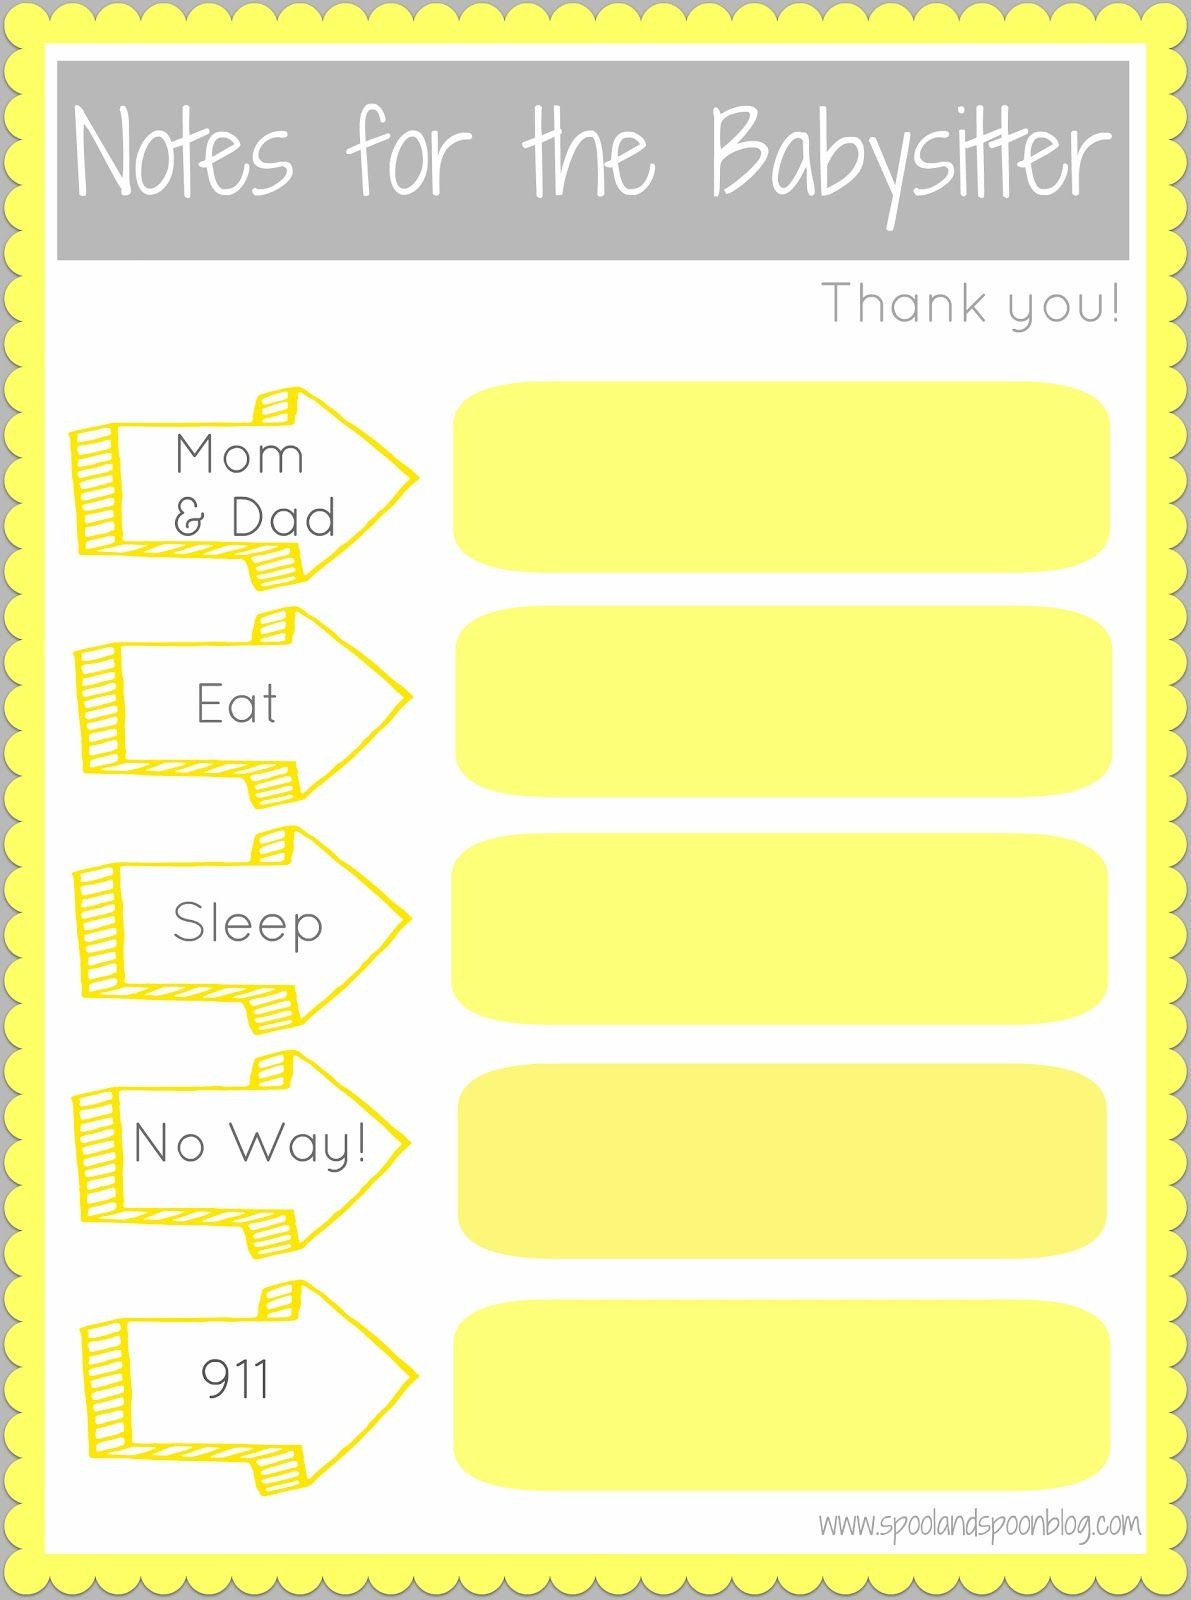 Spool And Spoon Notes For The Babysitter Printable Also Notes From The Babysitter Printable